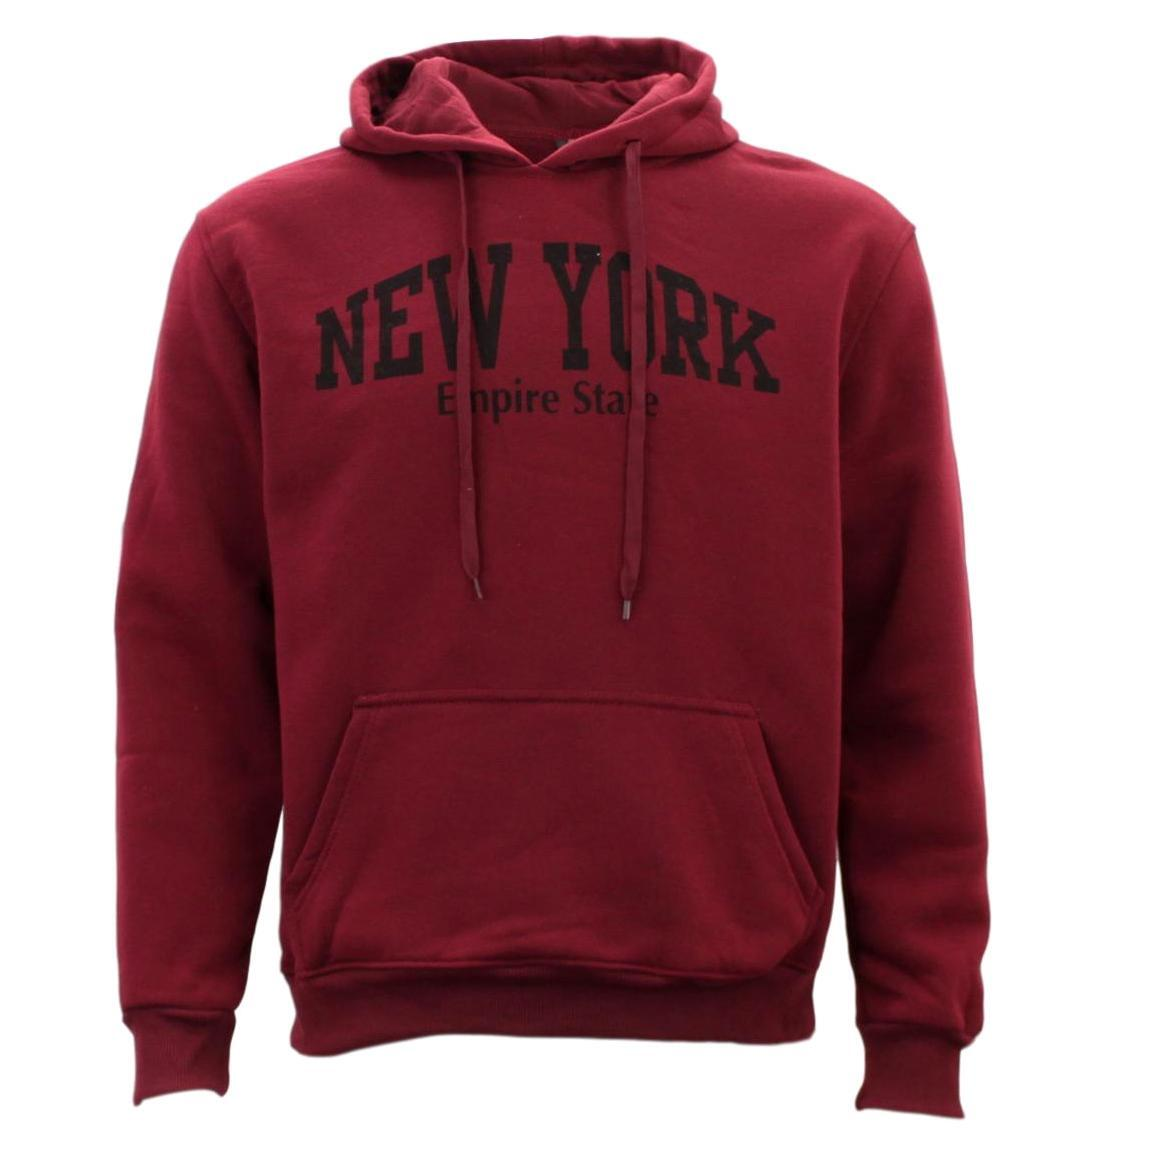 Adult-Men-039-s-Unisex-Hoodie-Hooded-Jumper-Pullover-Women-039-s-Sweater-NEW-YORK thumbnail 9